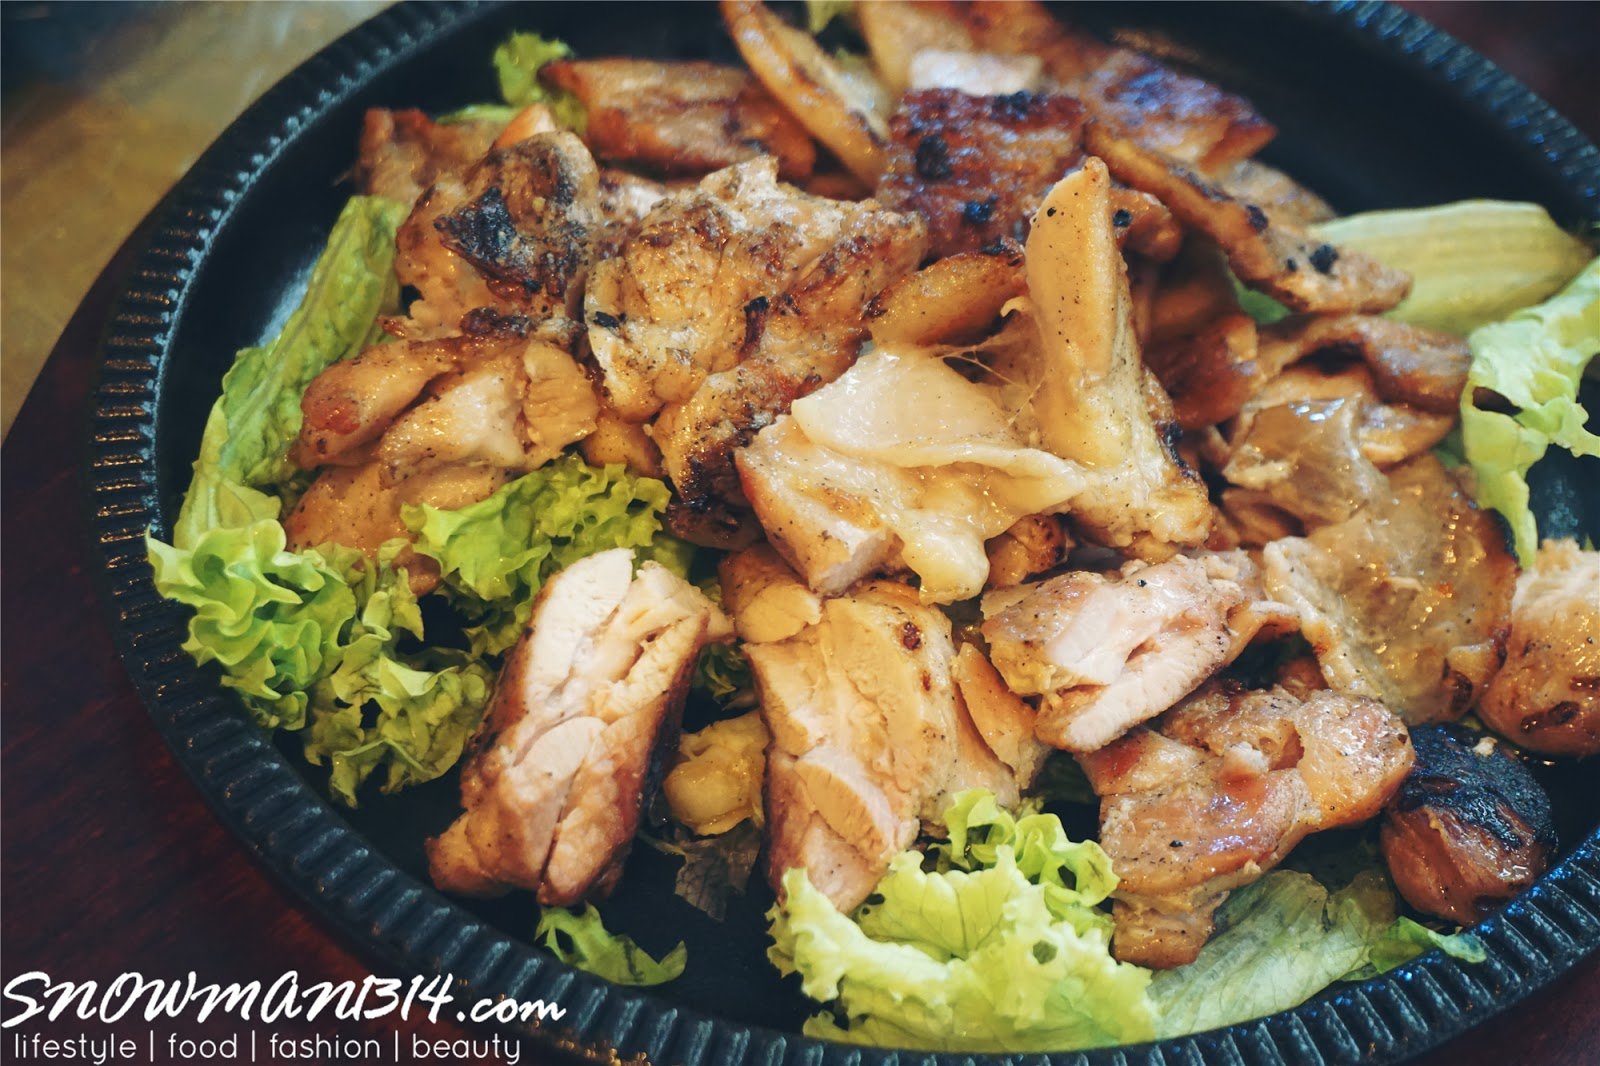 I Know Some Of You Guys Might Dislike The Smoke Bbq Smell All Over Your Clothes After Dining In Korean Bbq However In Korean Bbq House All Their Bbq Pork